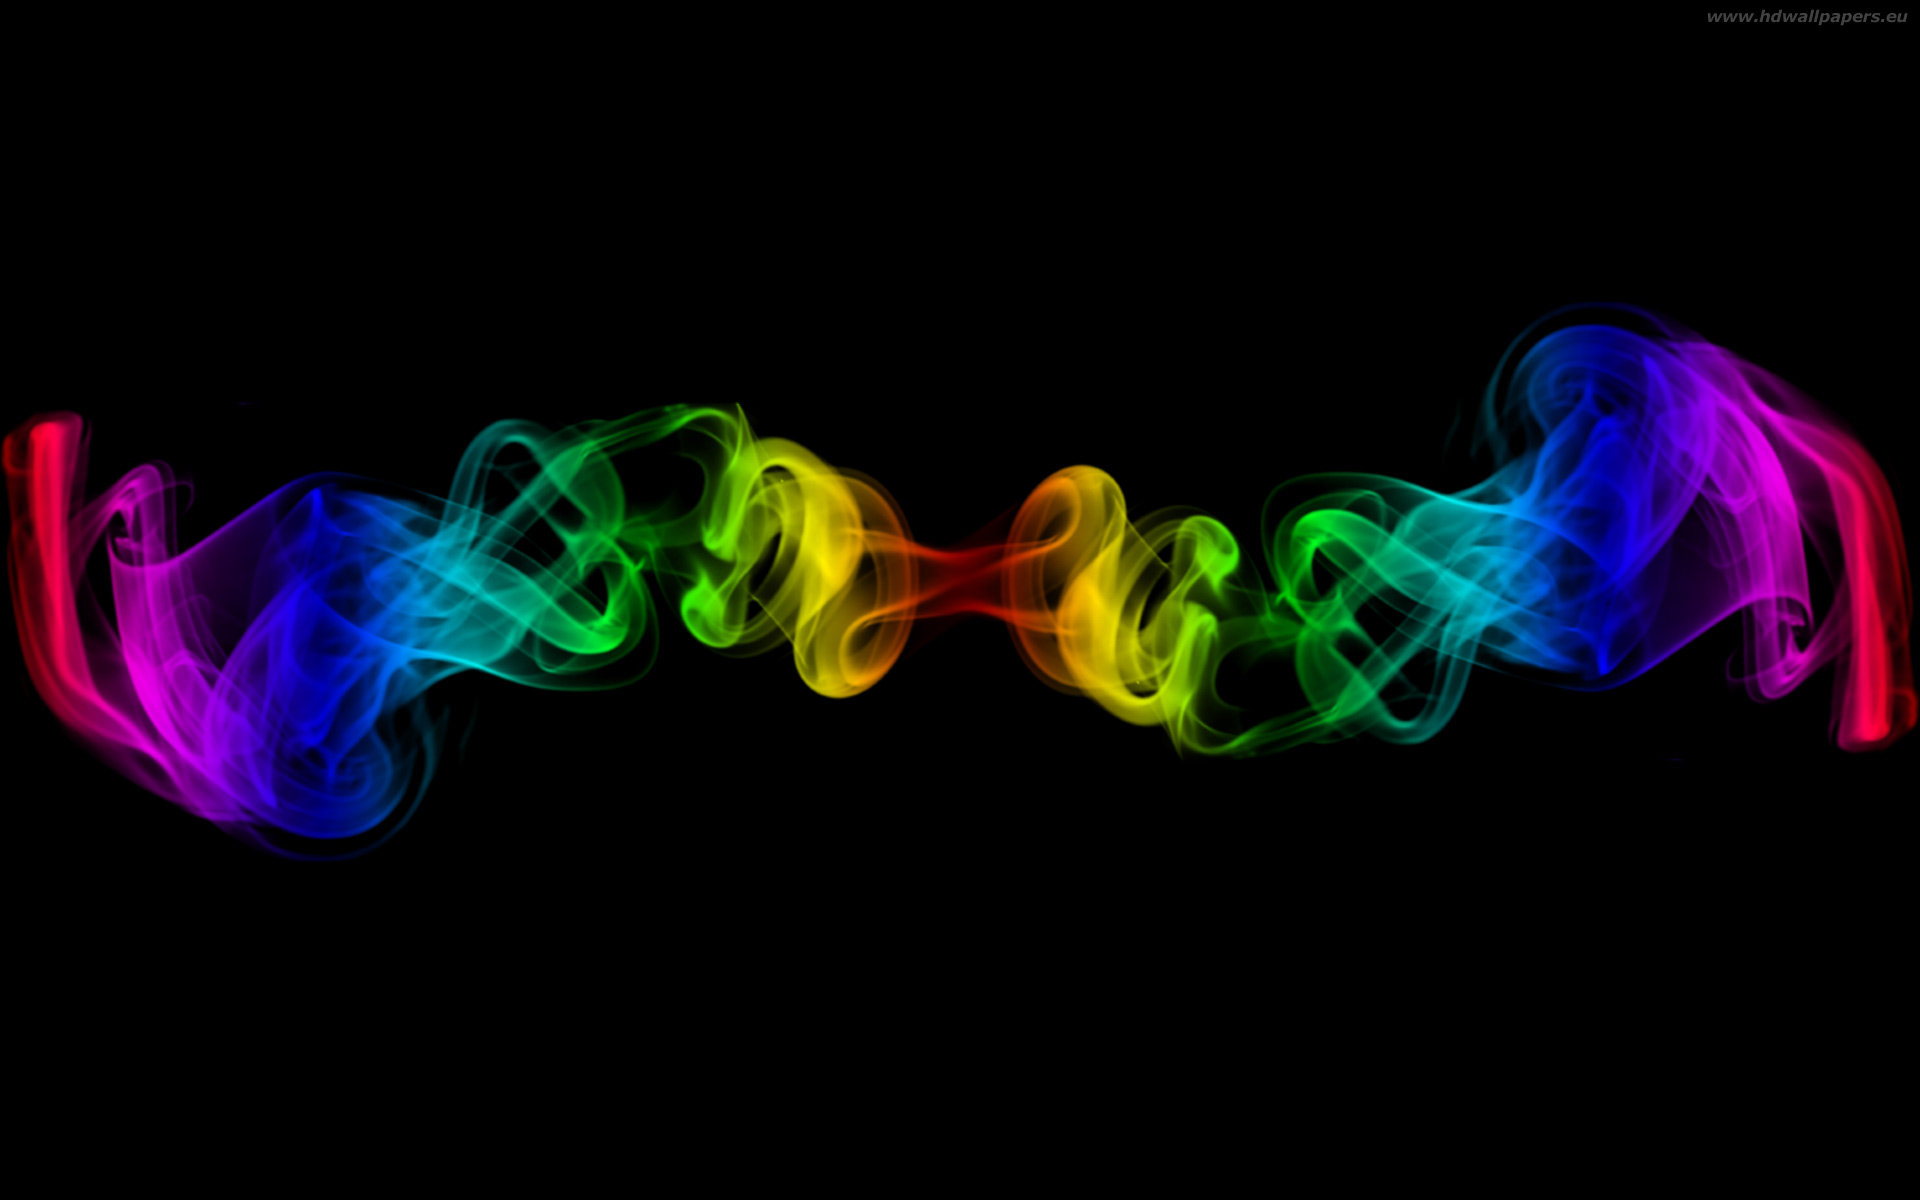 rainbow smoke wallpaper 1920x1200 1920x1200